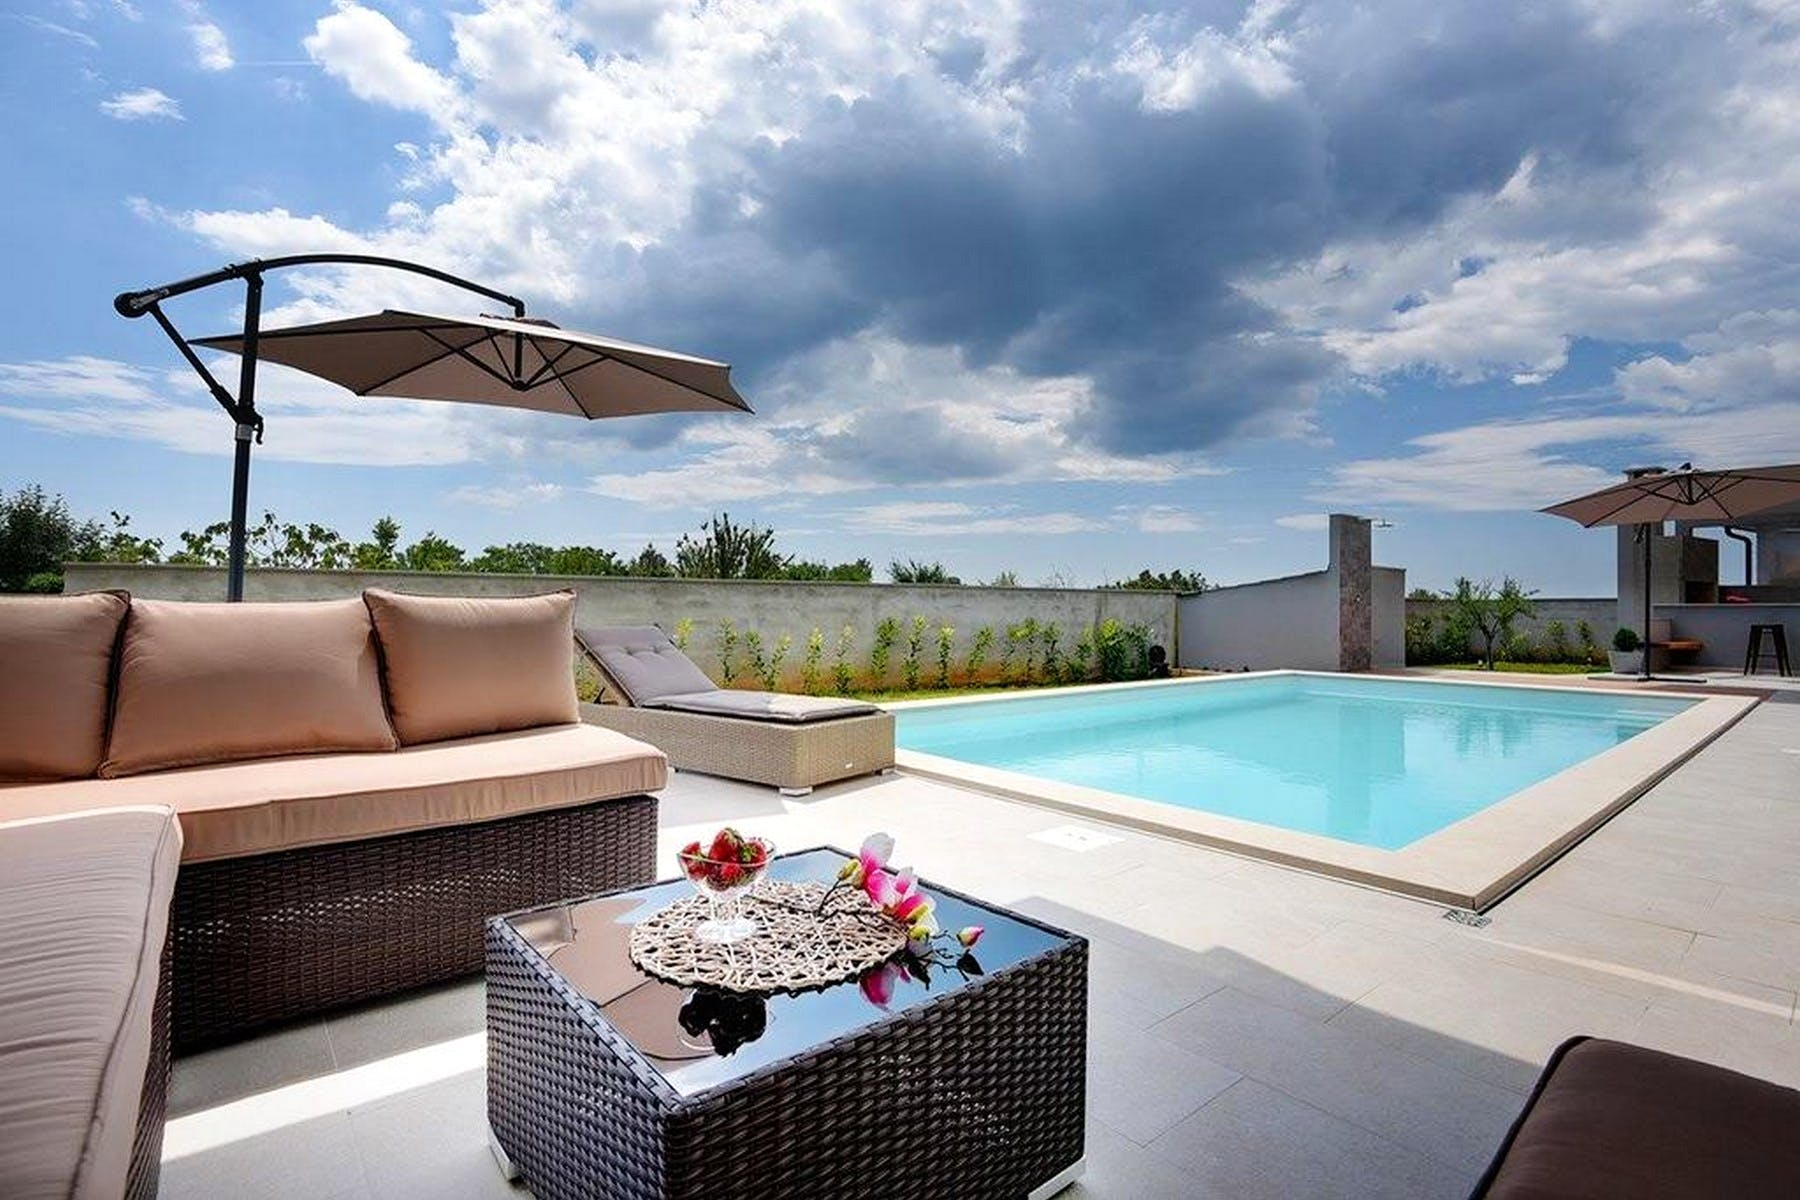 Spacious terrace with swimming pool and sun deck